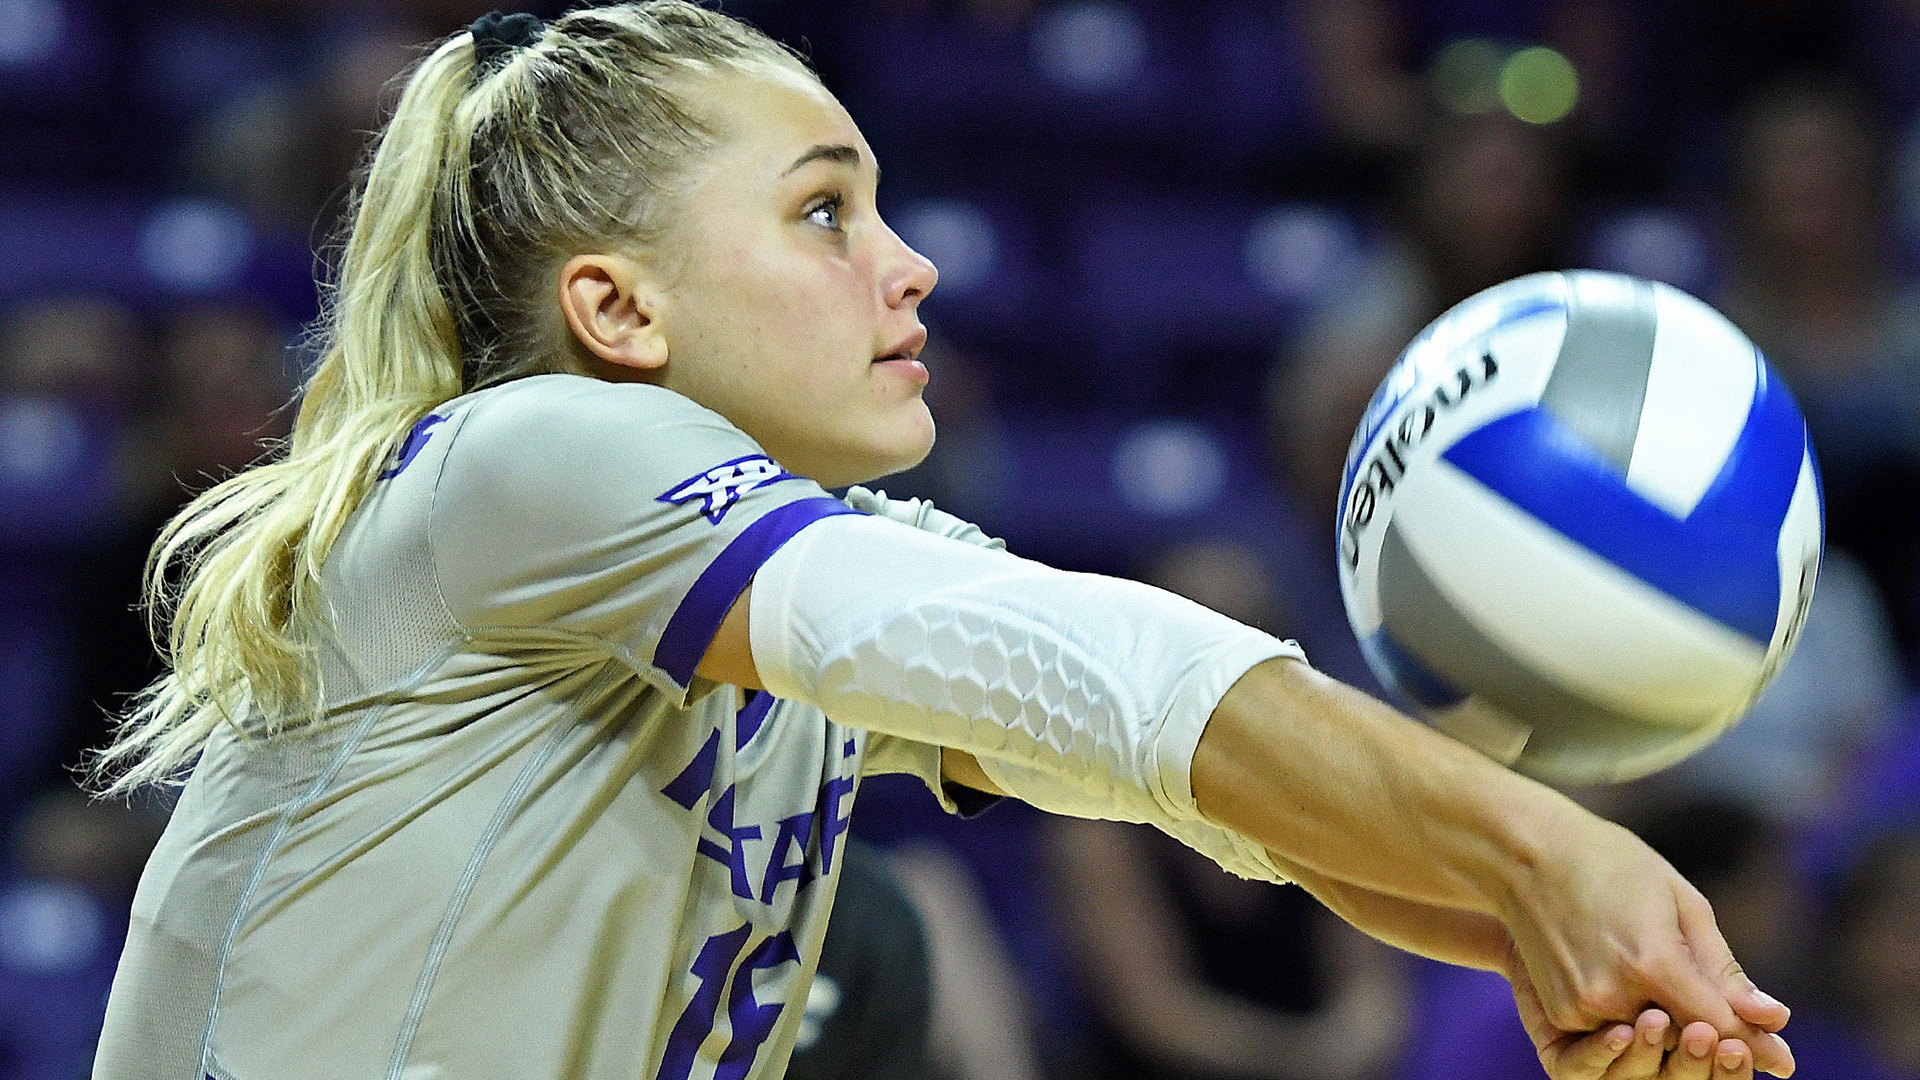 SE: Kuck Keeping K-State VB in Rallies with Relentless Digging Mentality